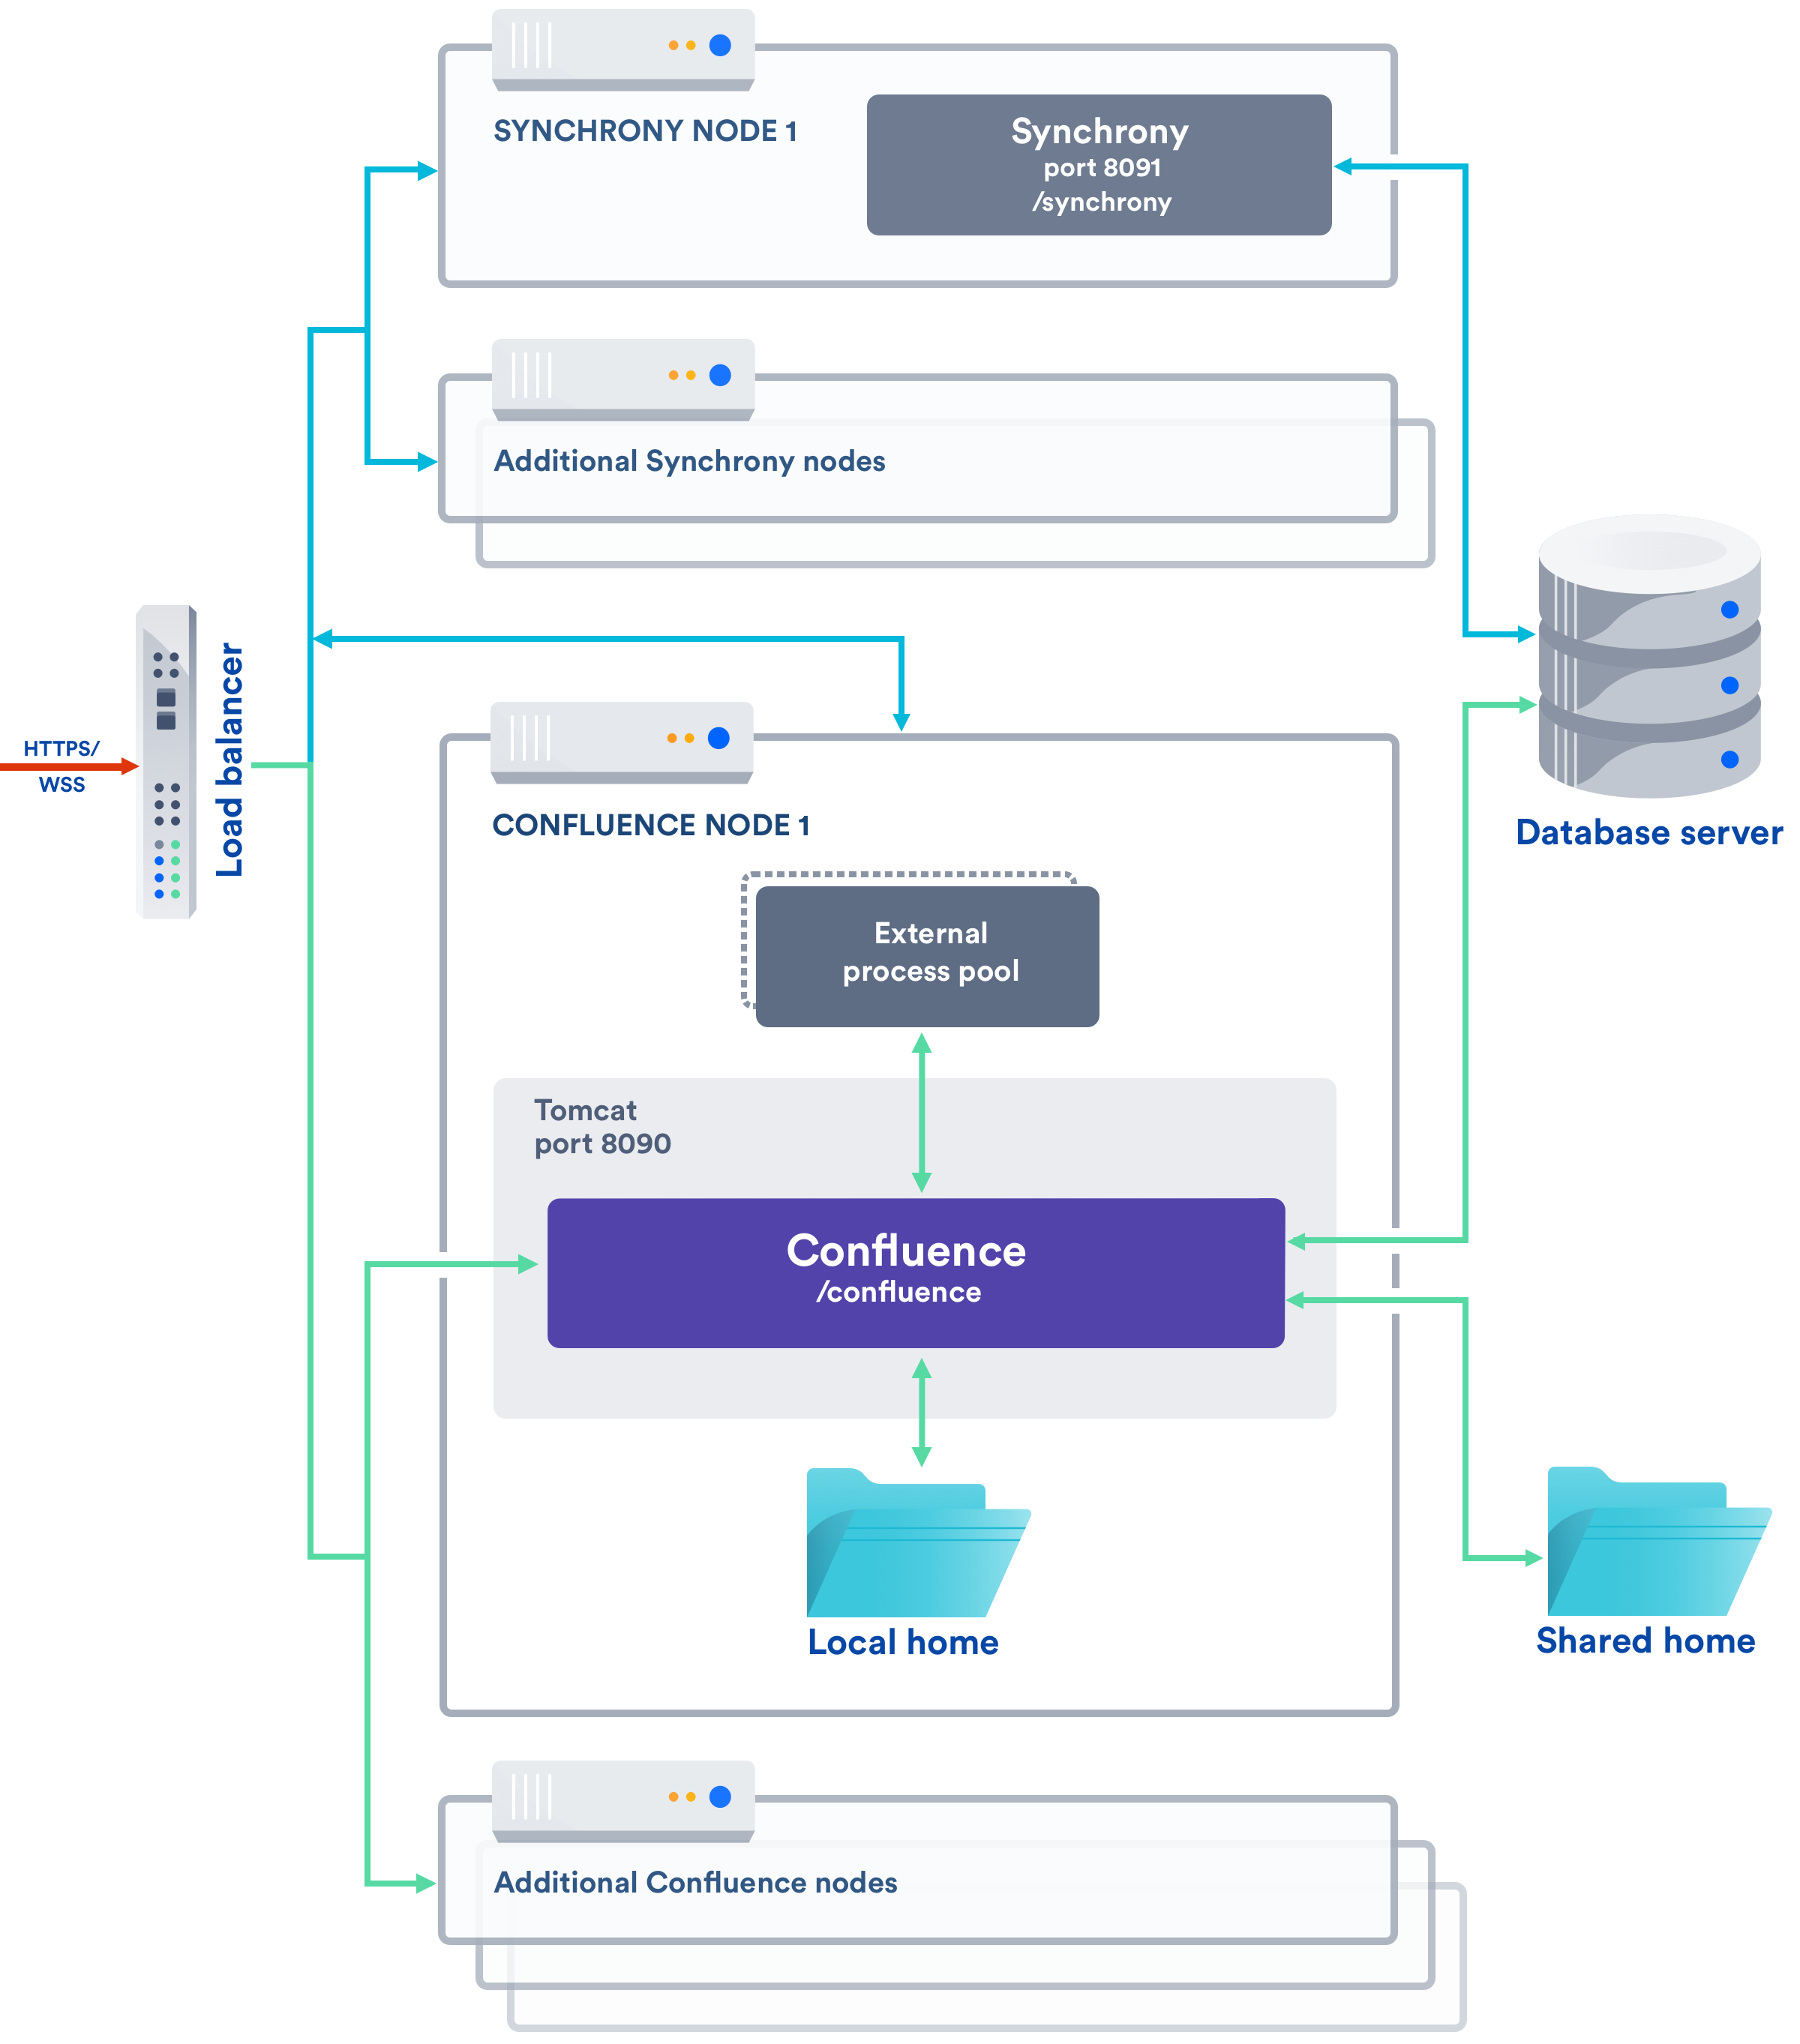 Set Up A Synchrony Cluster For Confluence Data Center Atlassian Template Stack Process Diagram With 5 Stages Powerpoint Templates Created Sketch